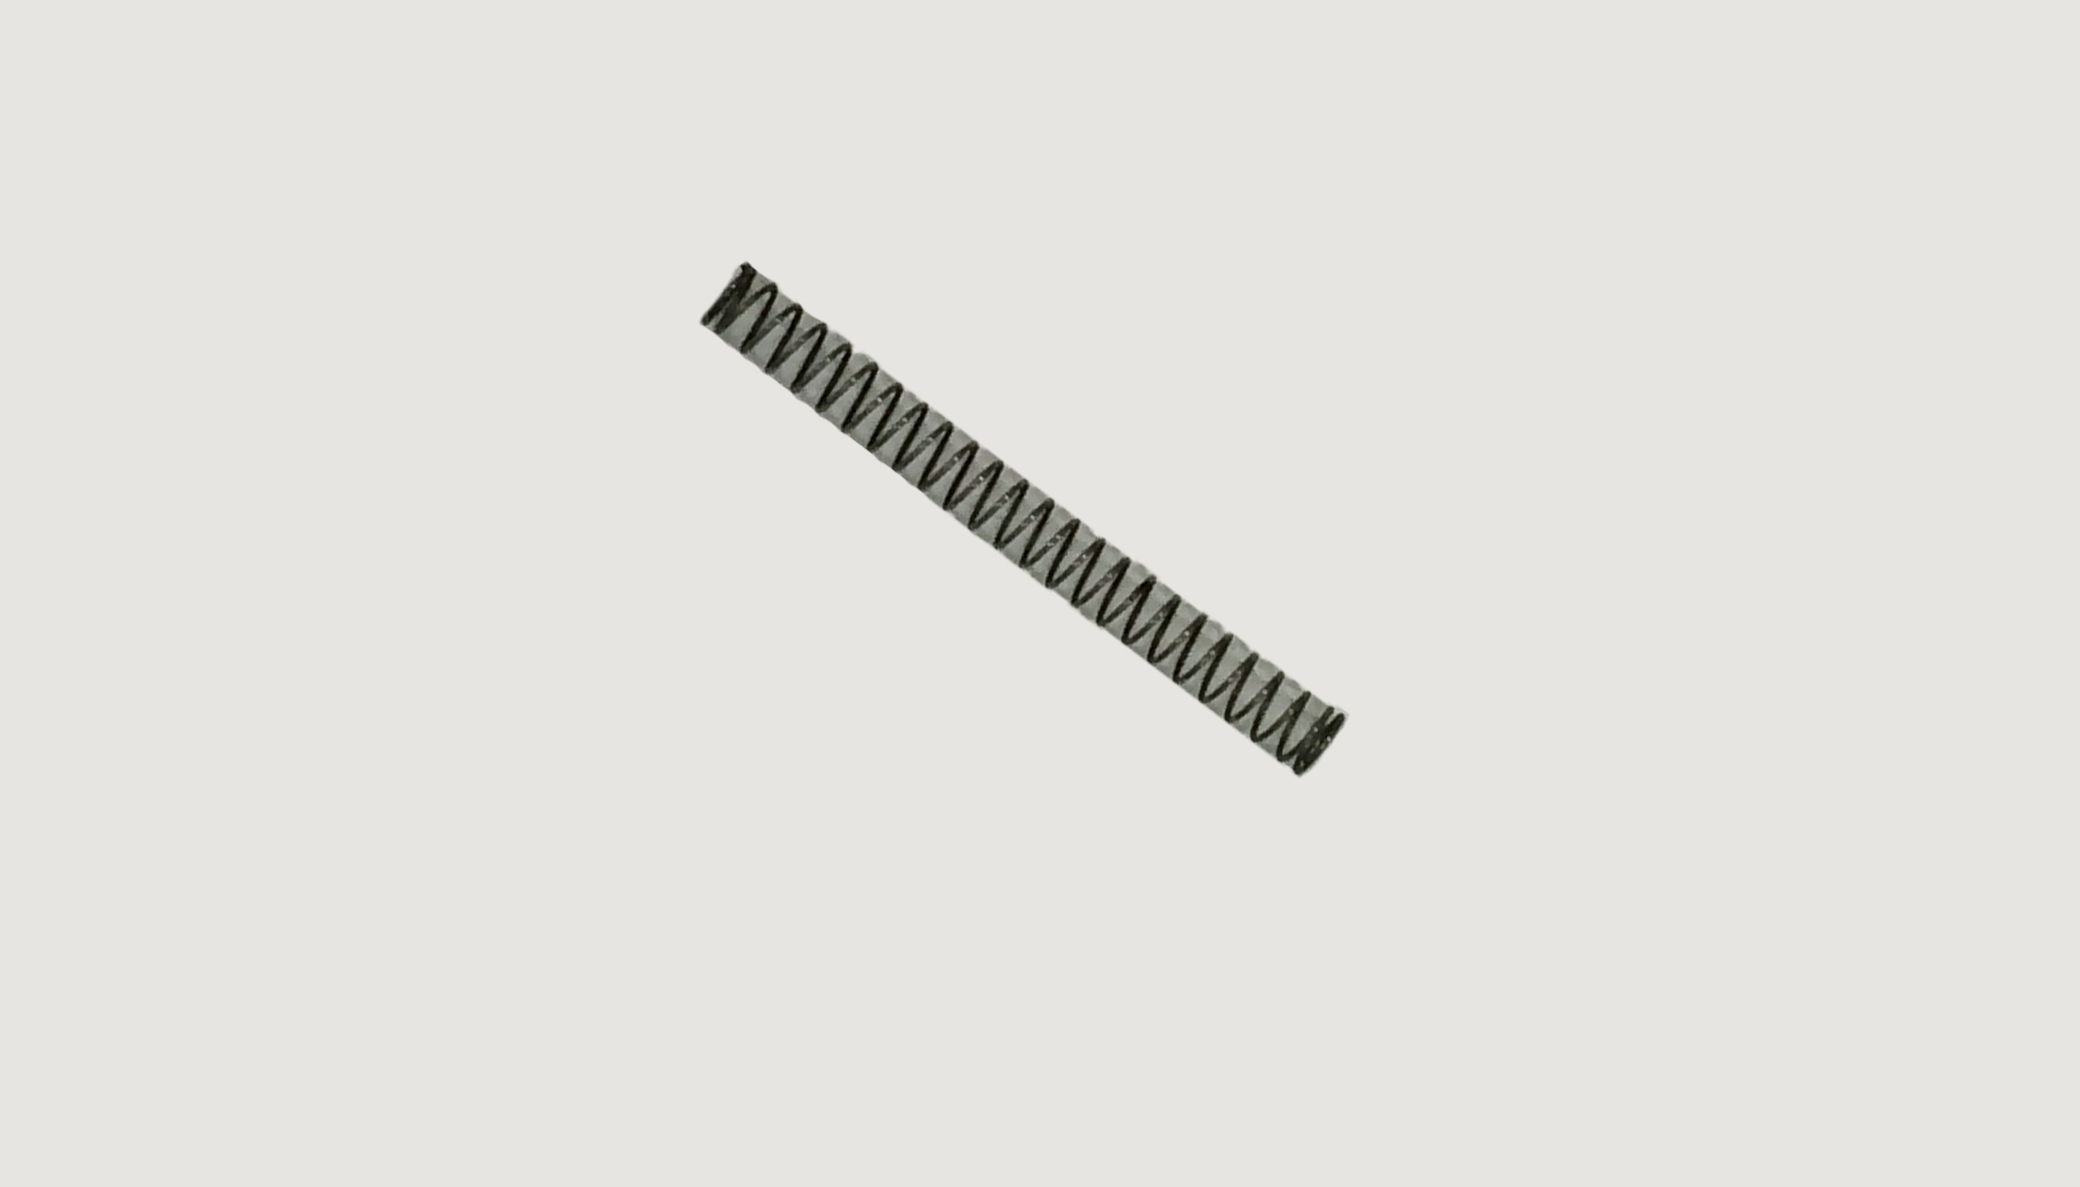 Replacement Spring For Door Latch Kit (1 Spring)